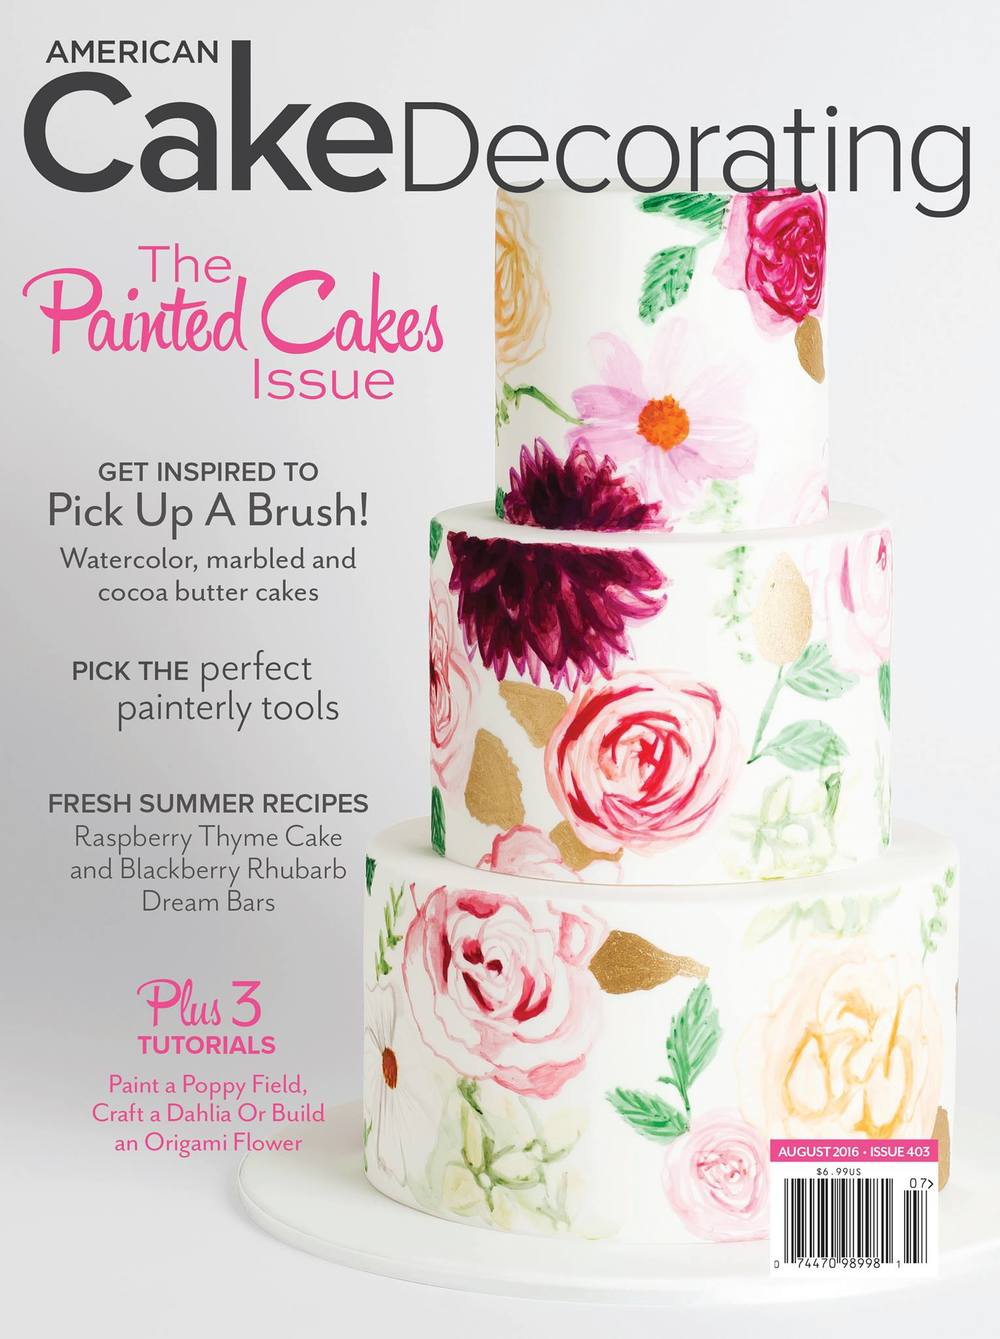 Published In American Cake Decorating Magazine